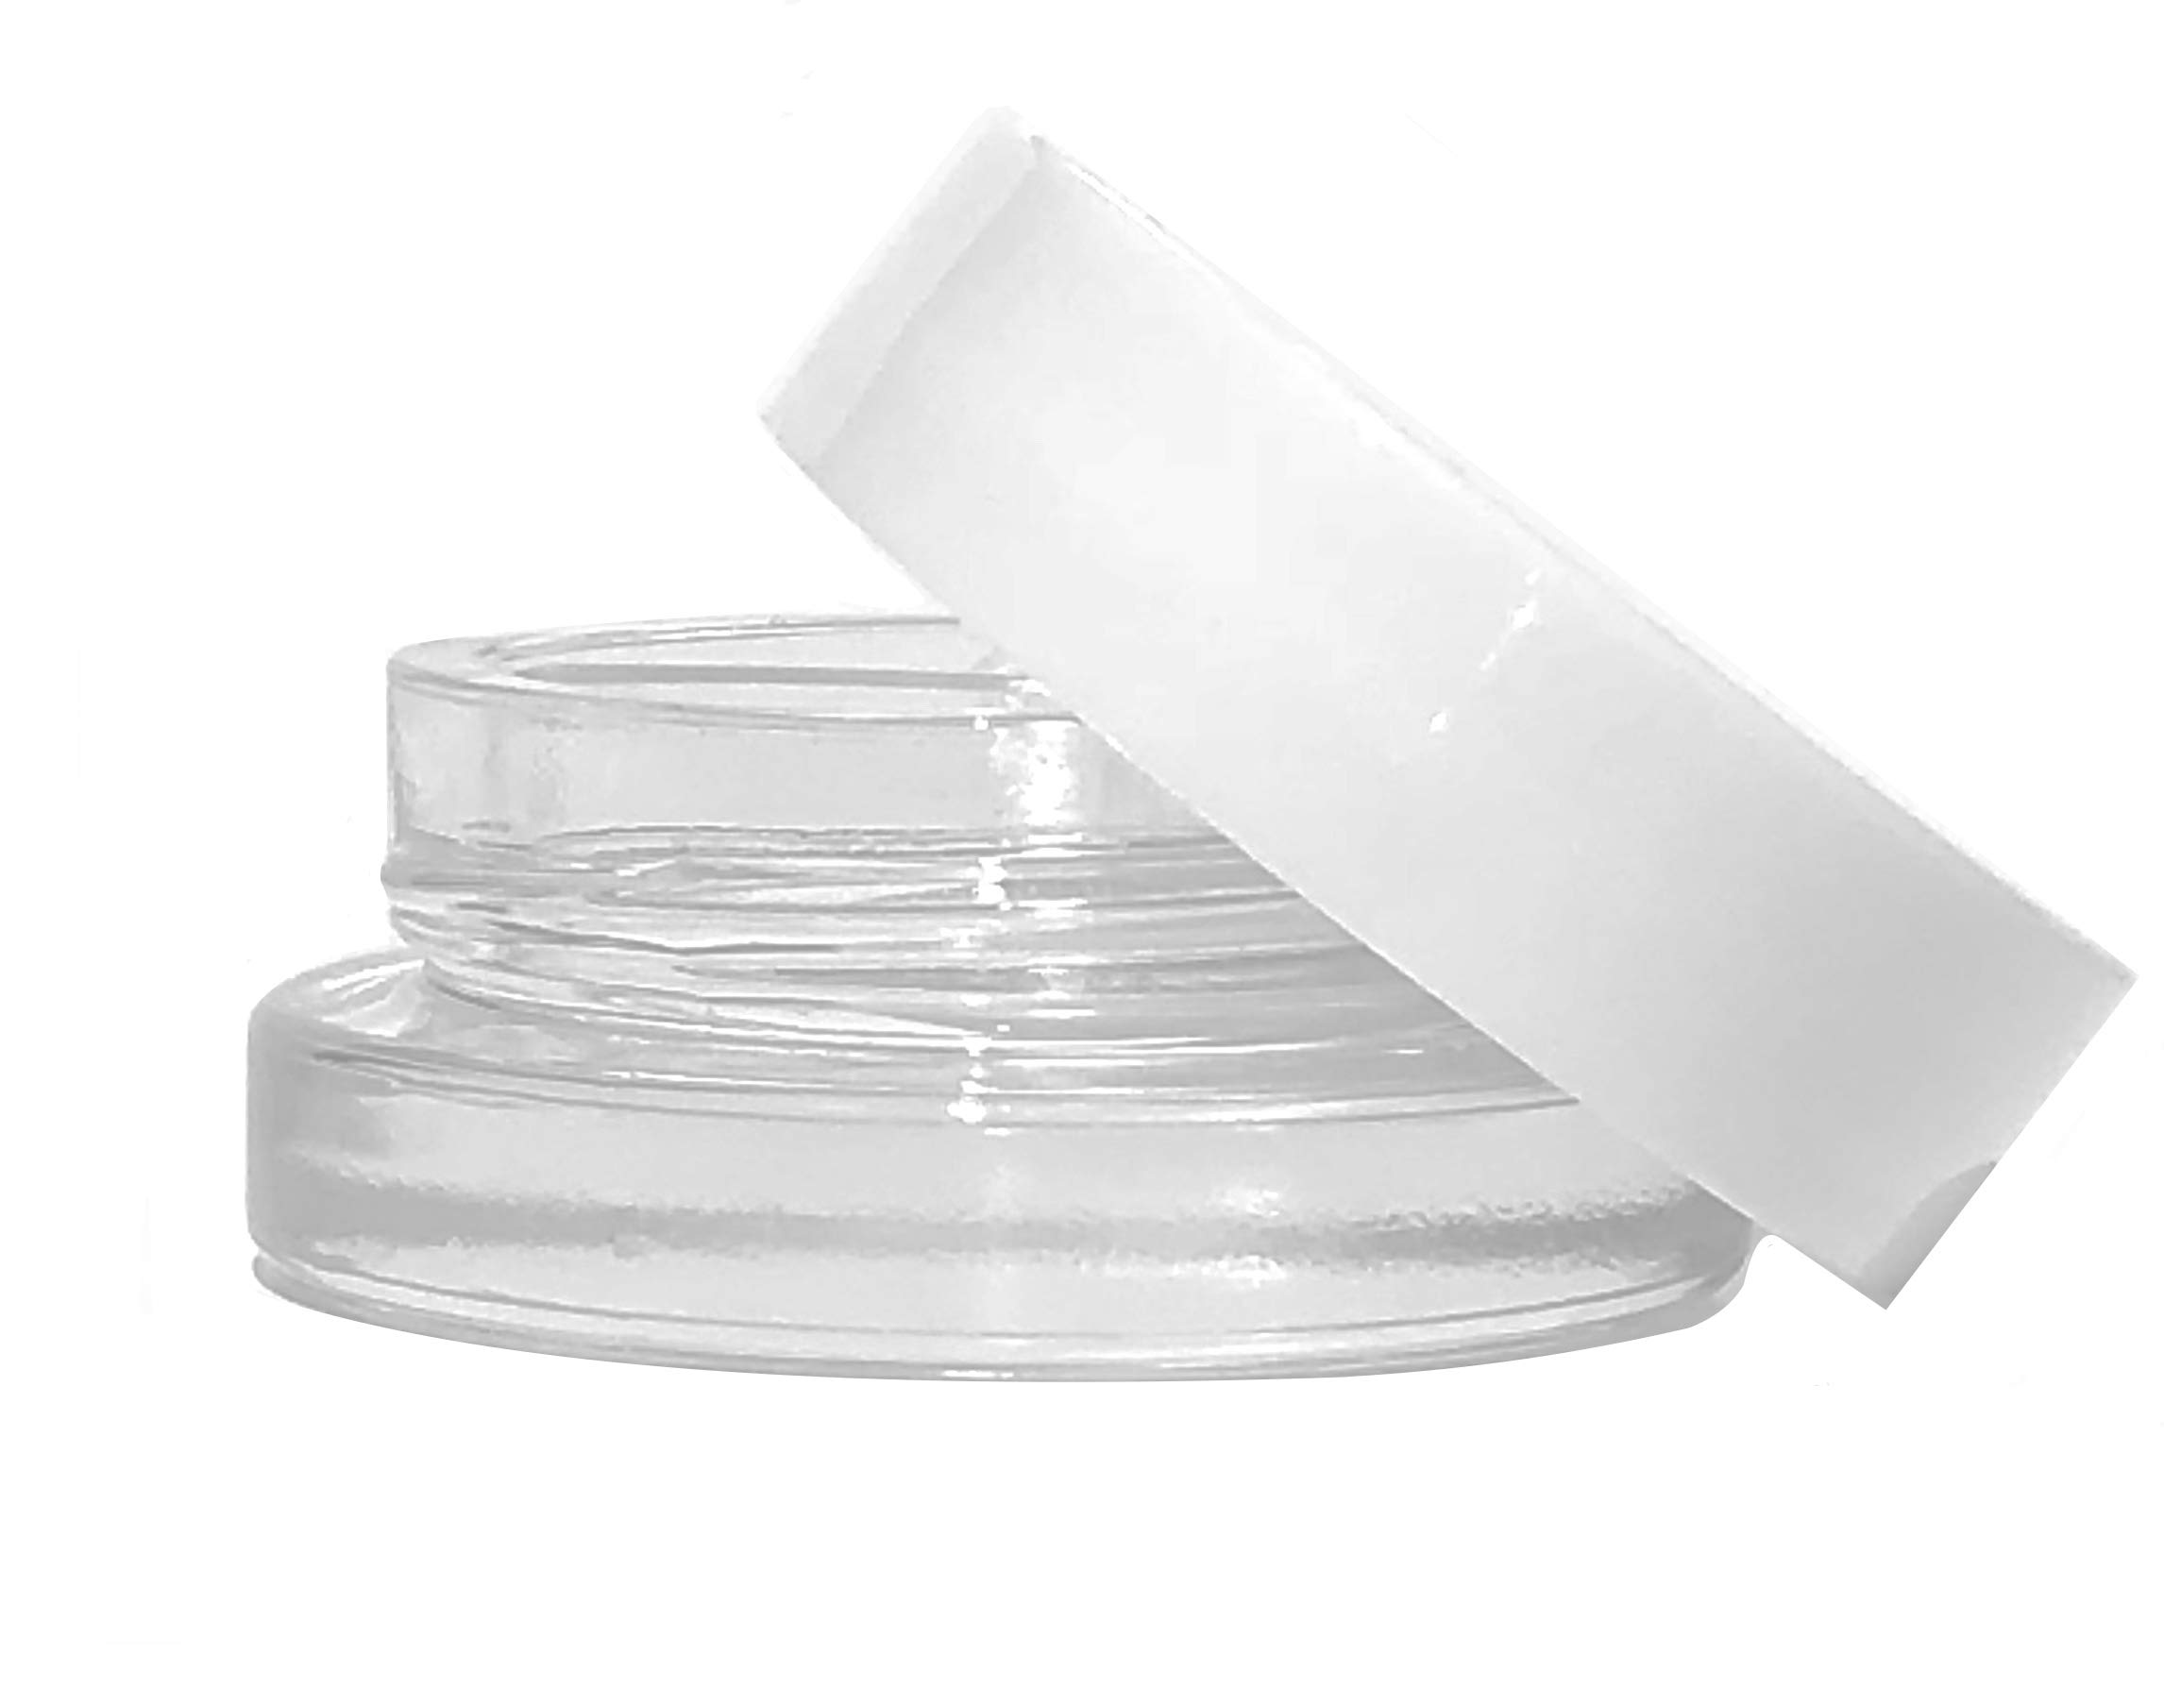 7ml Glass Jars with White Lids (90-Pack) Lip Balm - Concentrate Containers - homemade by Infinite Container (Image #1)